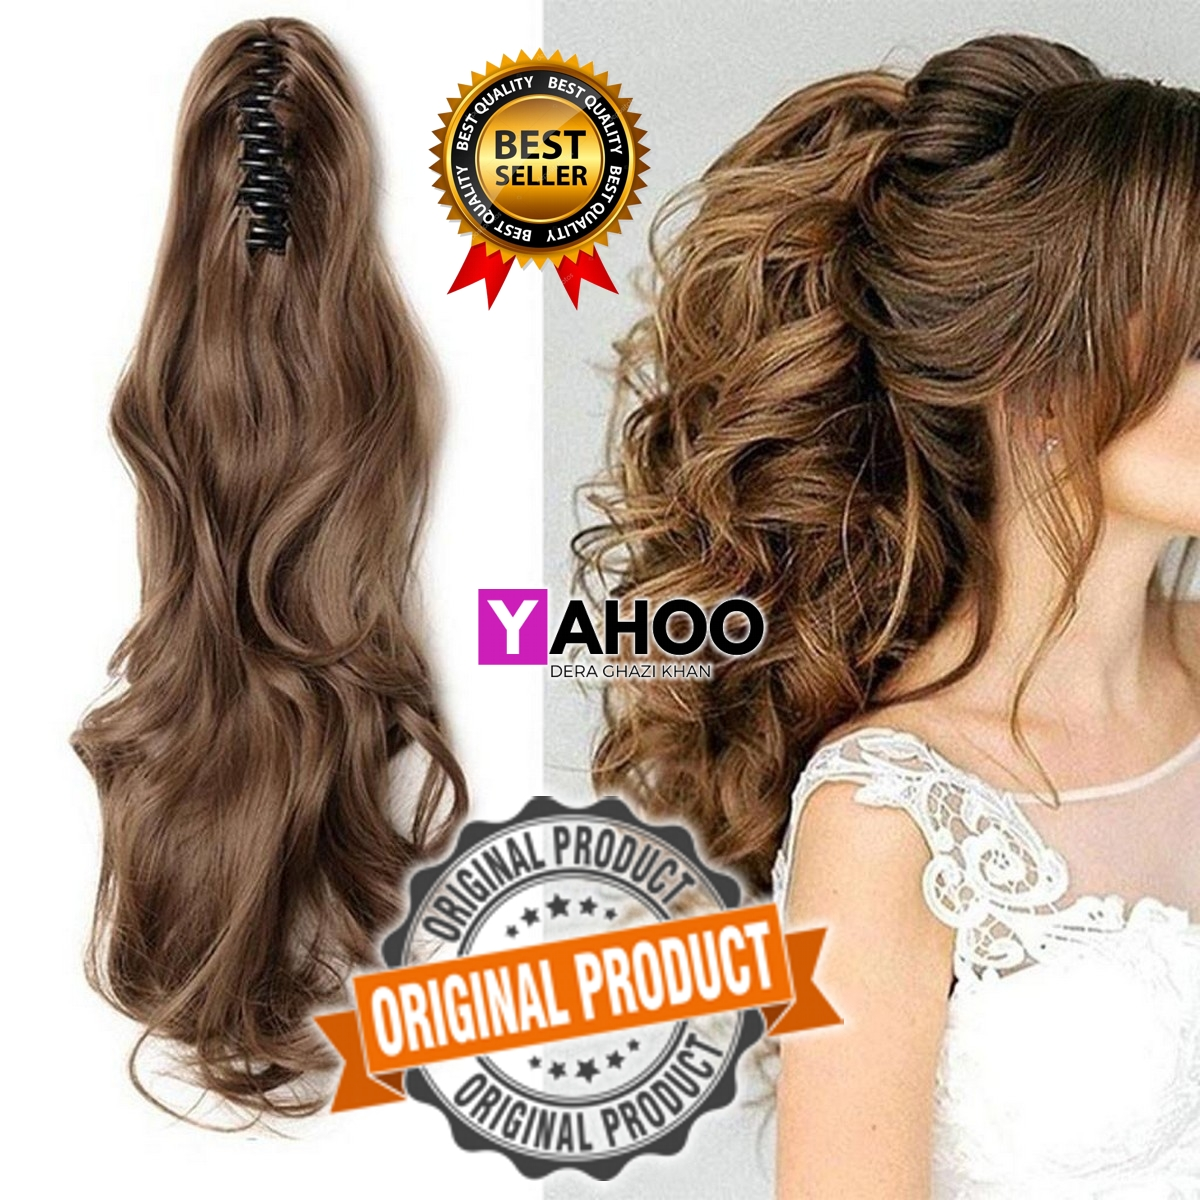 Hair Wig Aloha Soft Hair Claw Clip Pony Tail 26 Inches Long - Golden Brown